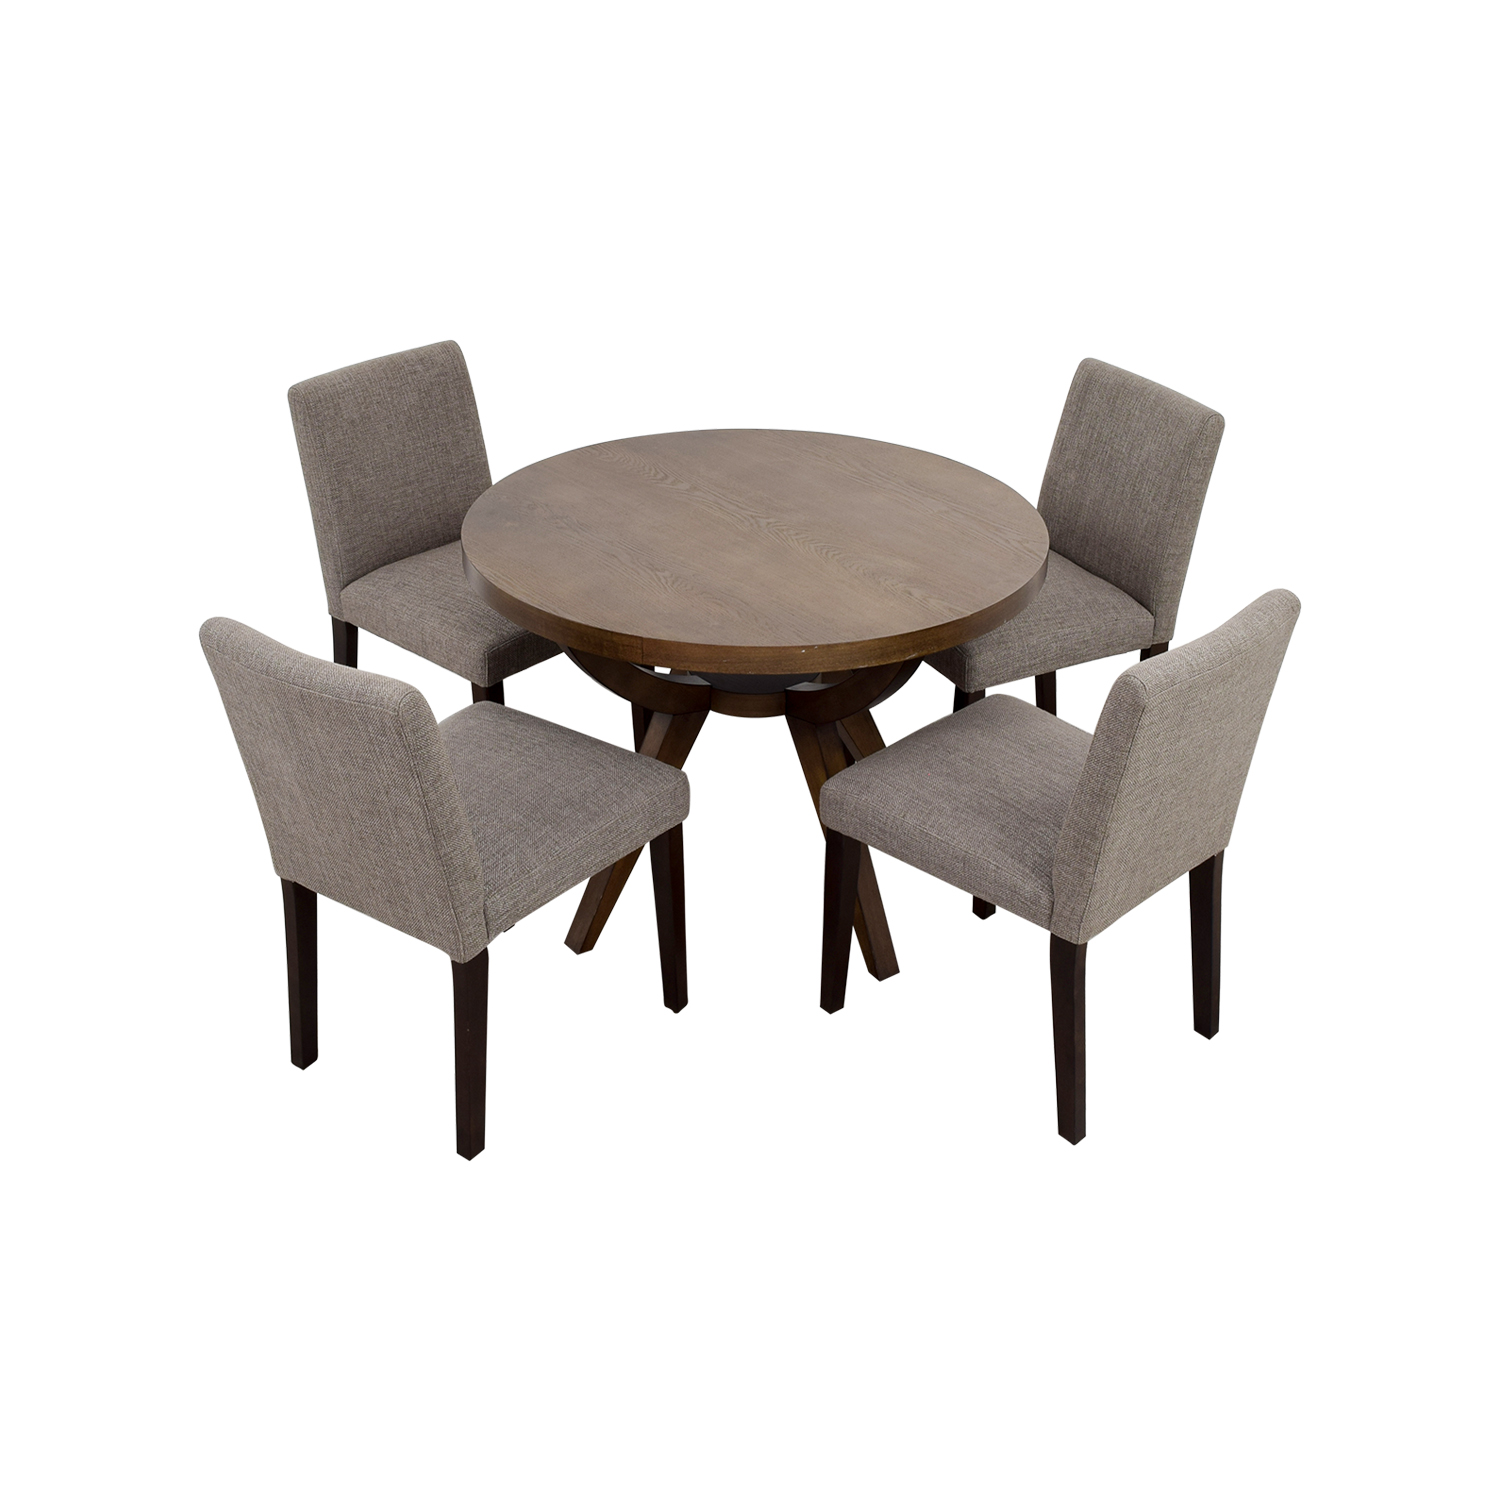 ... Shop West Elm West Elm Arc Base Pedestal Table And Chairs Online ...